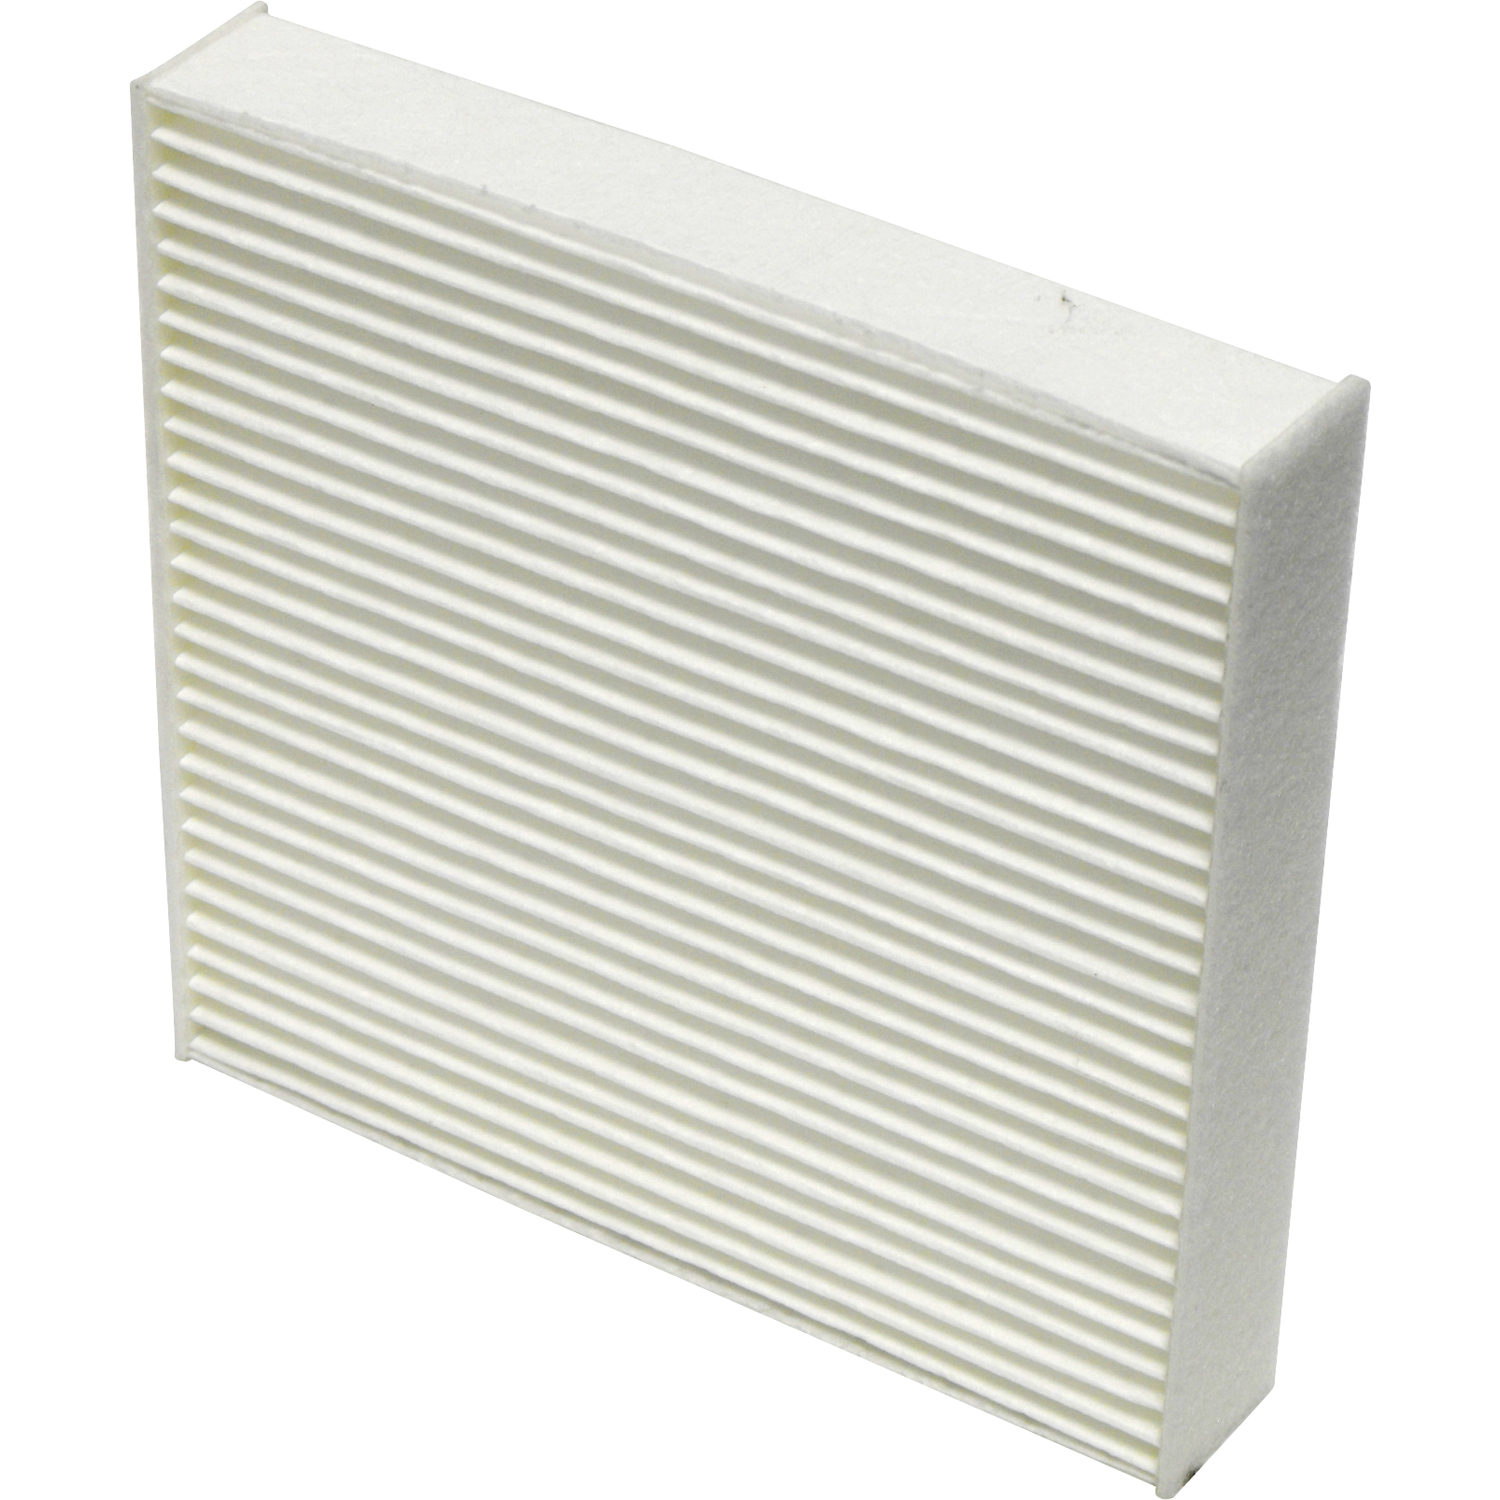 Particulate Cabin Air Filter FI 1181C